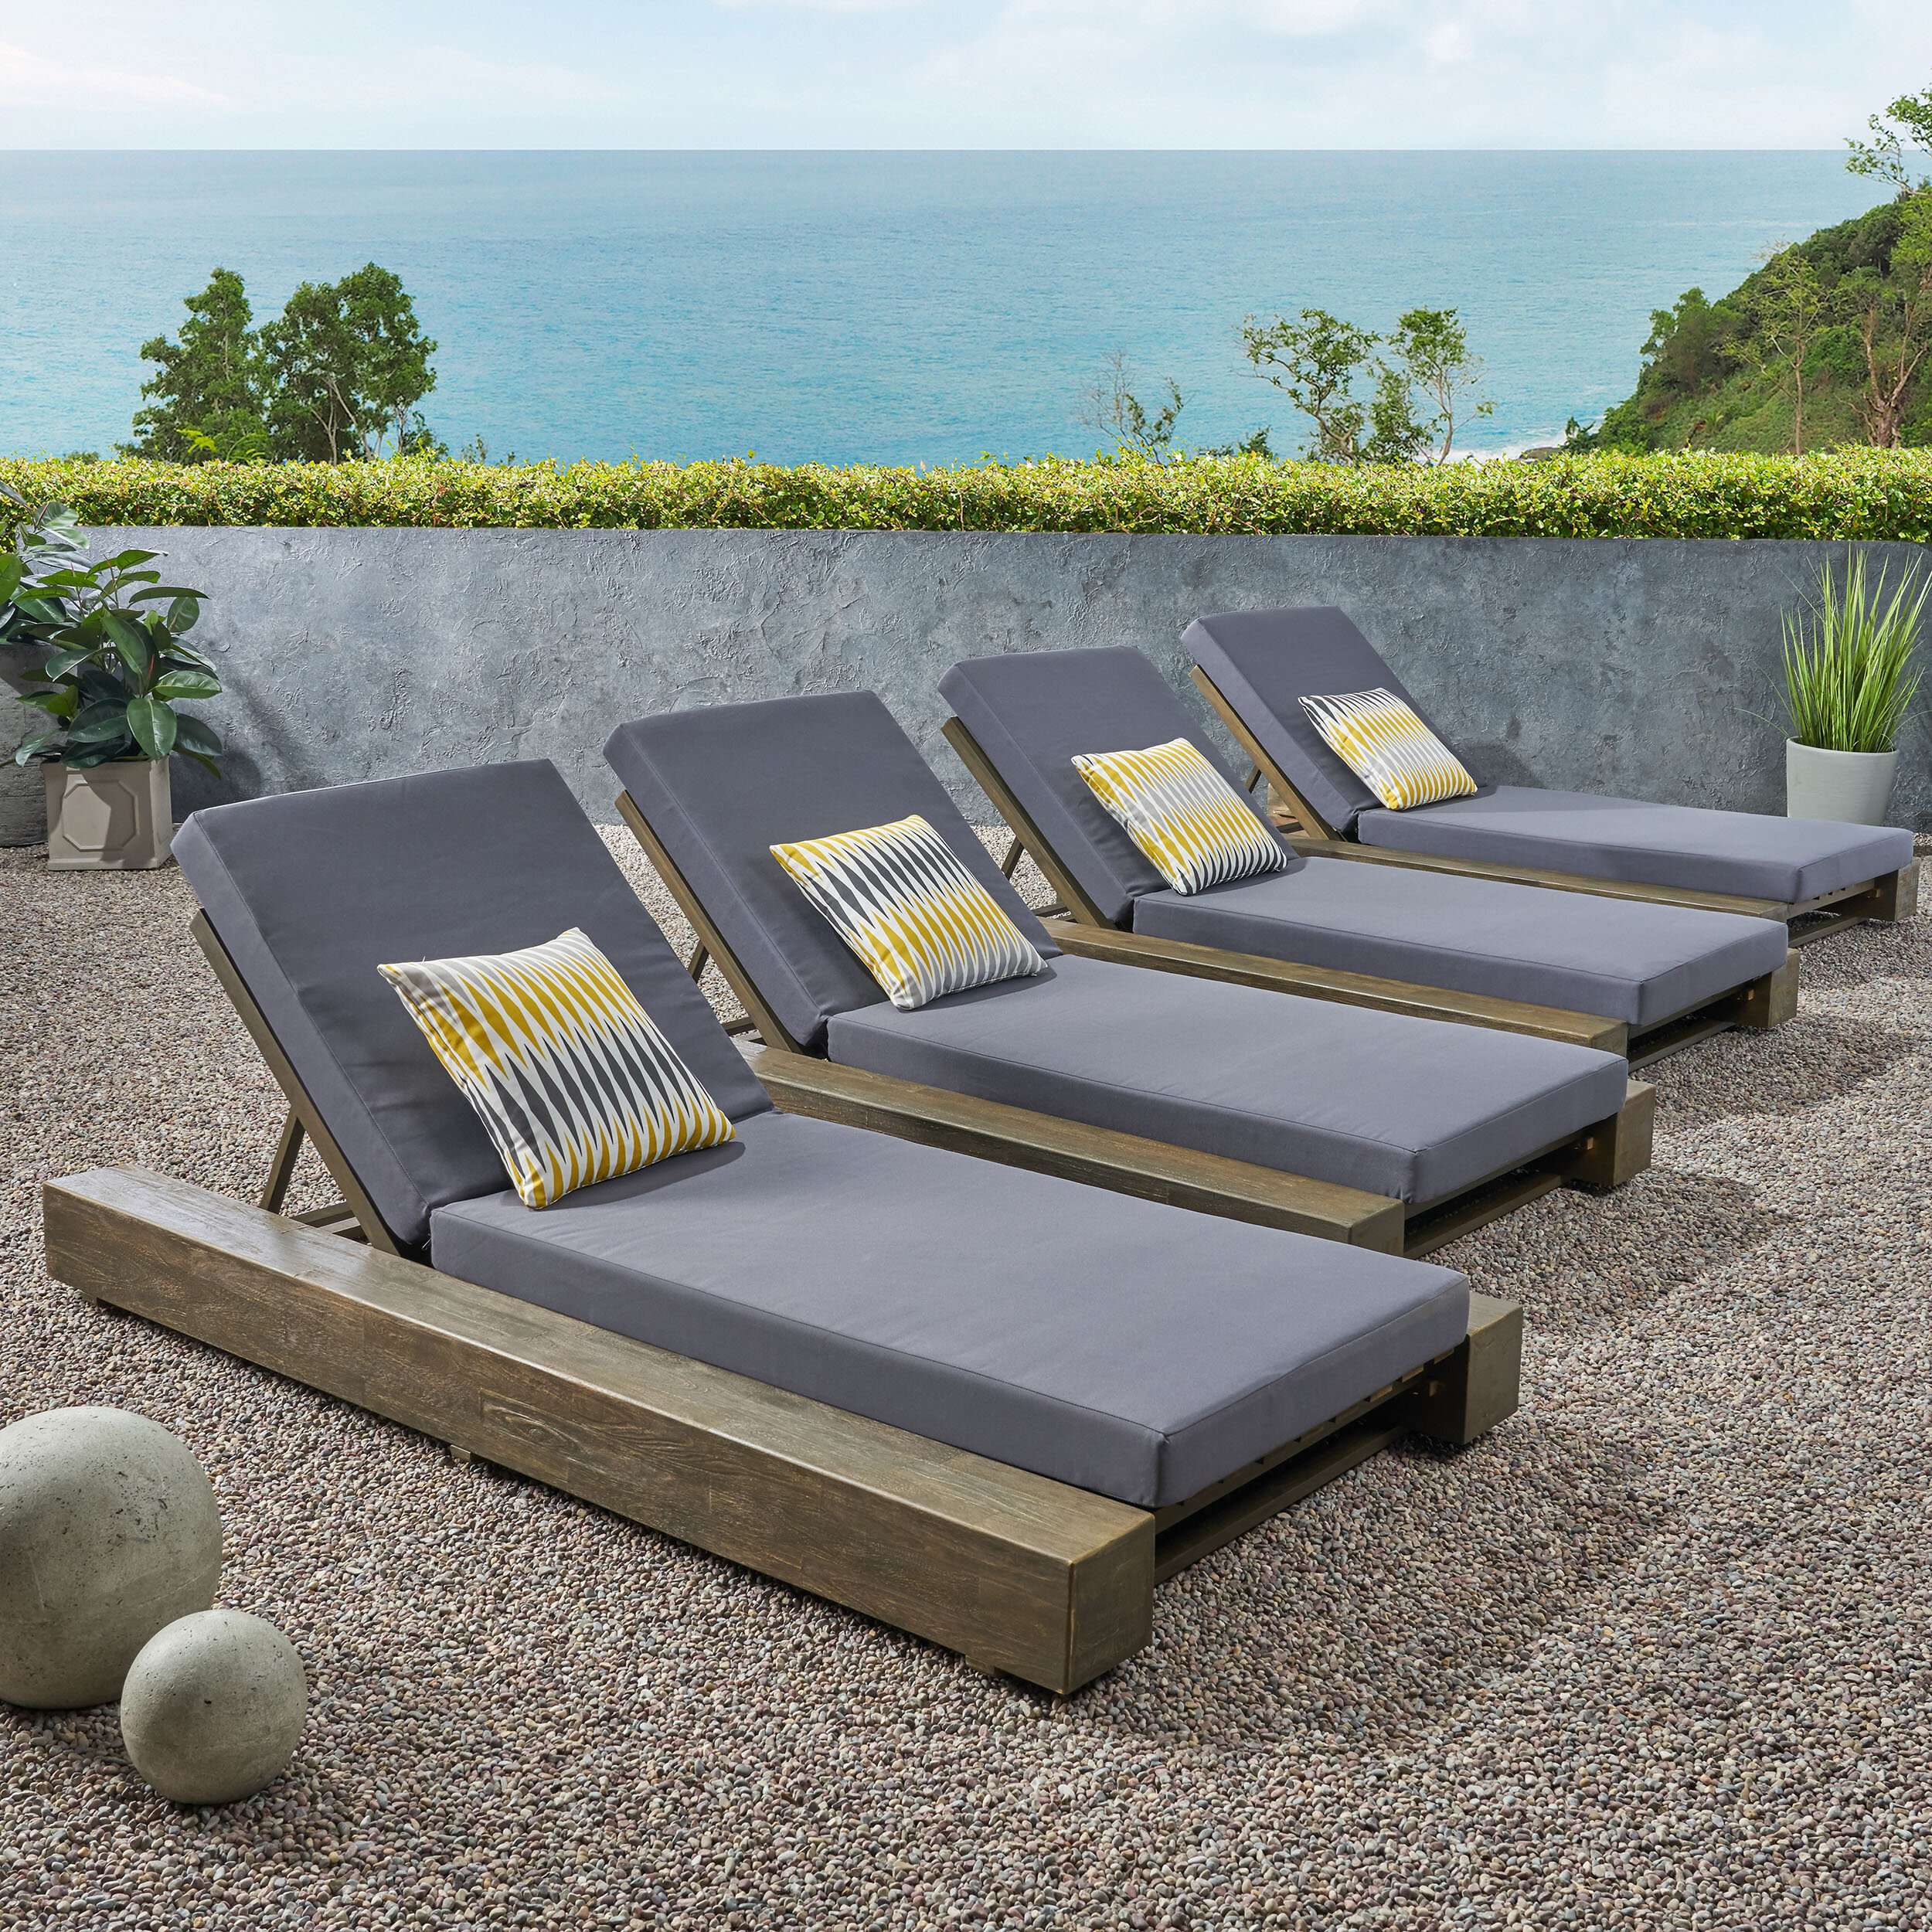 Union Rustic Outdoor Reclining Chaise Lounge With Cushion Reviews Wayfair